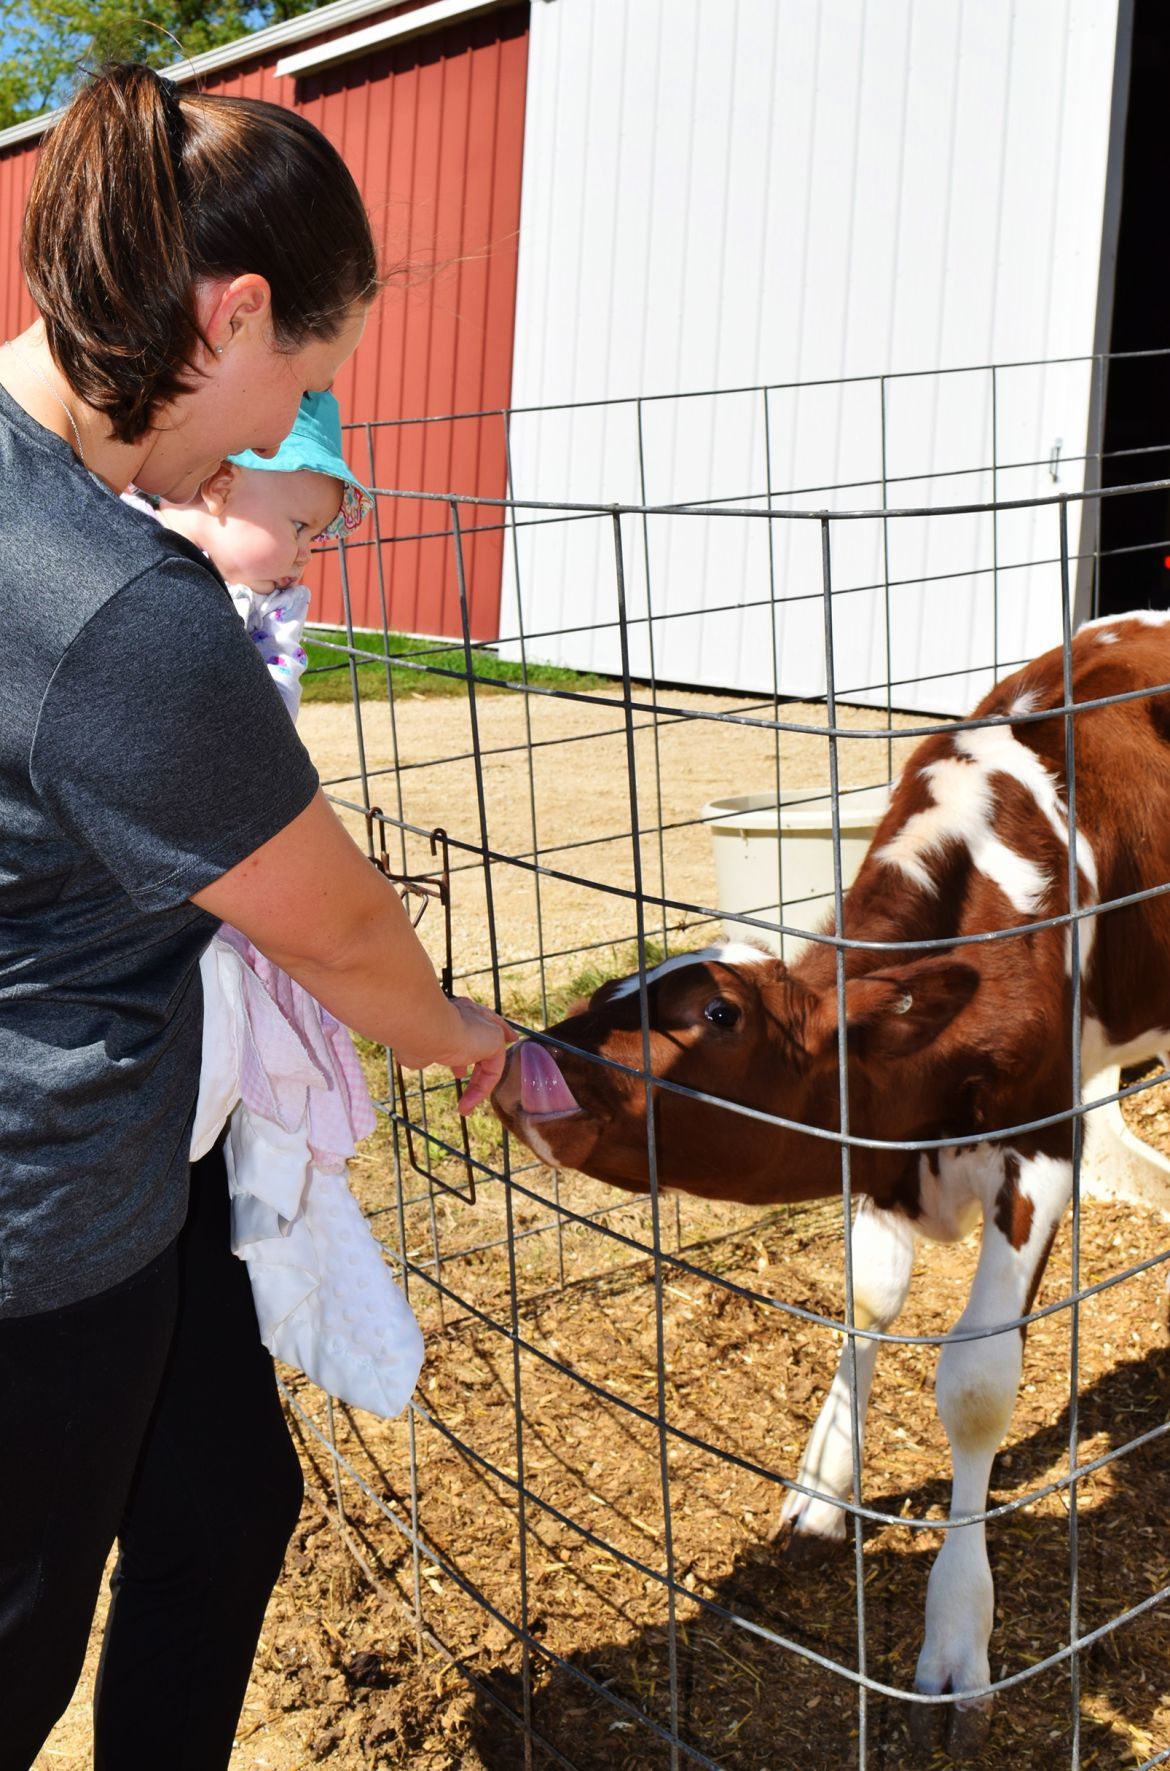 Brenda Gilbertson with her daughter, Janelle, and calf